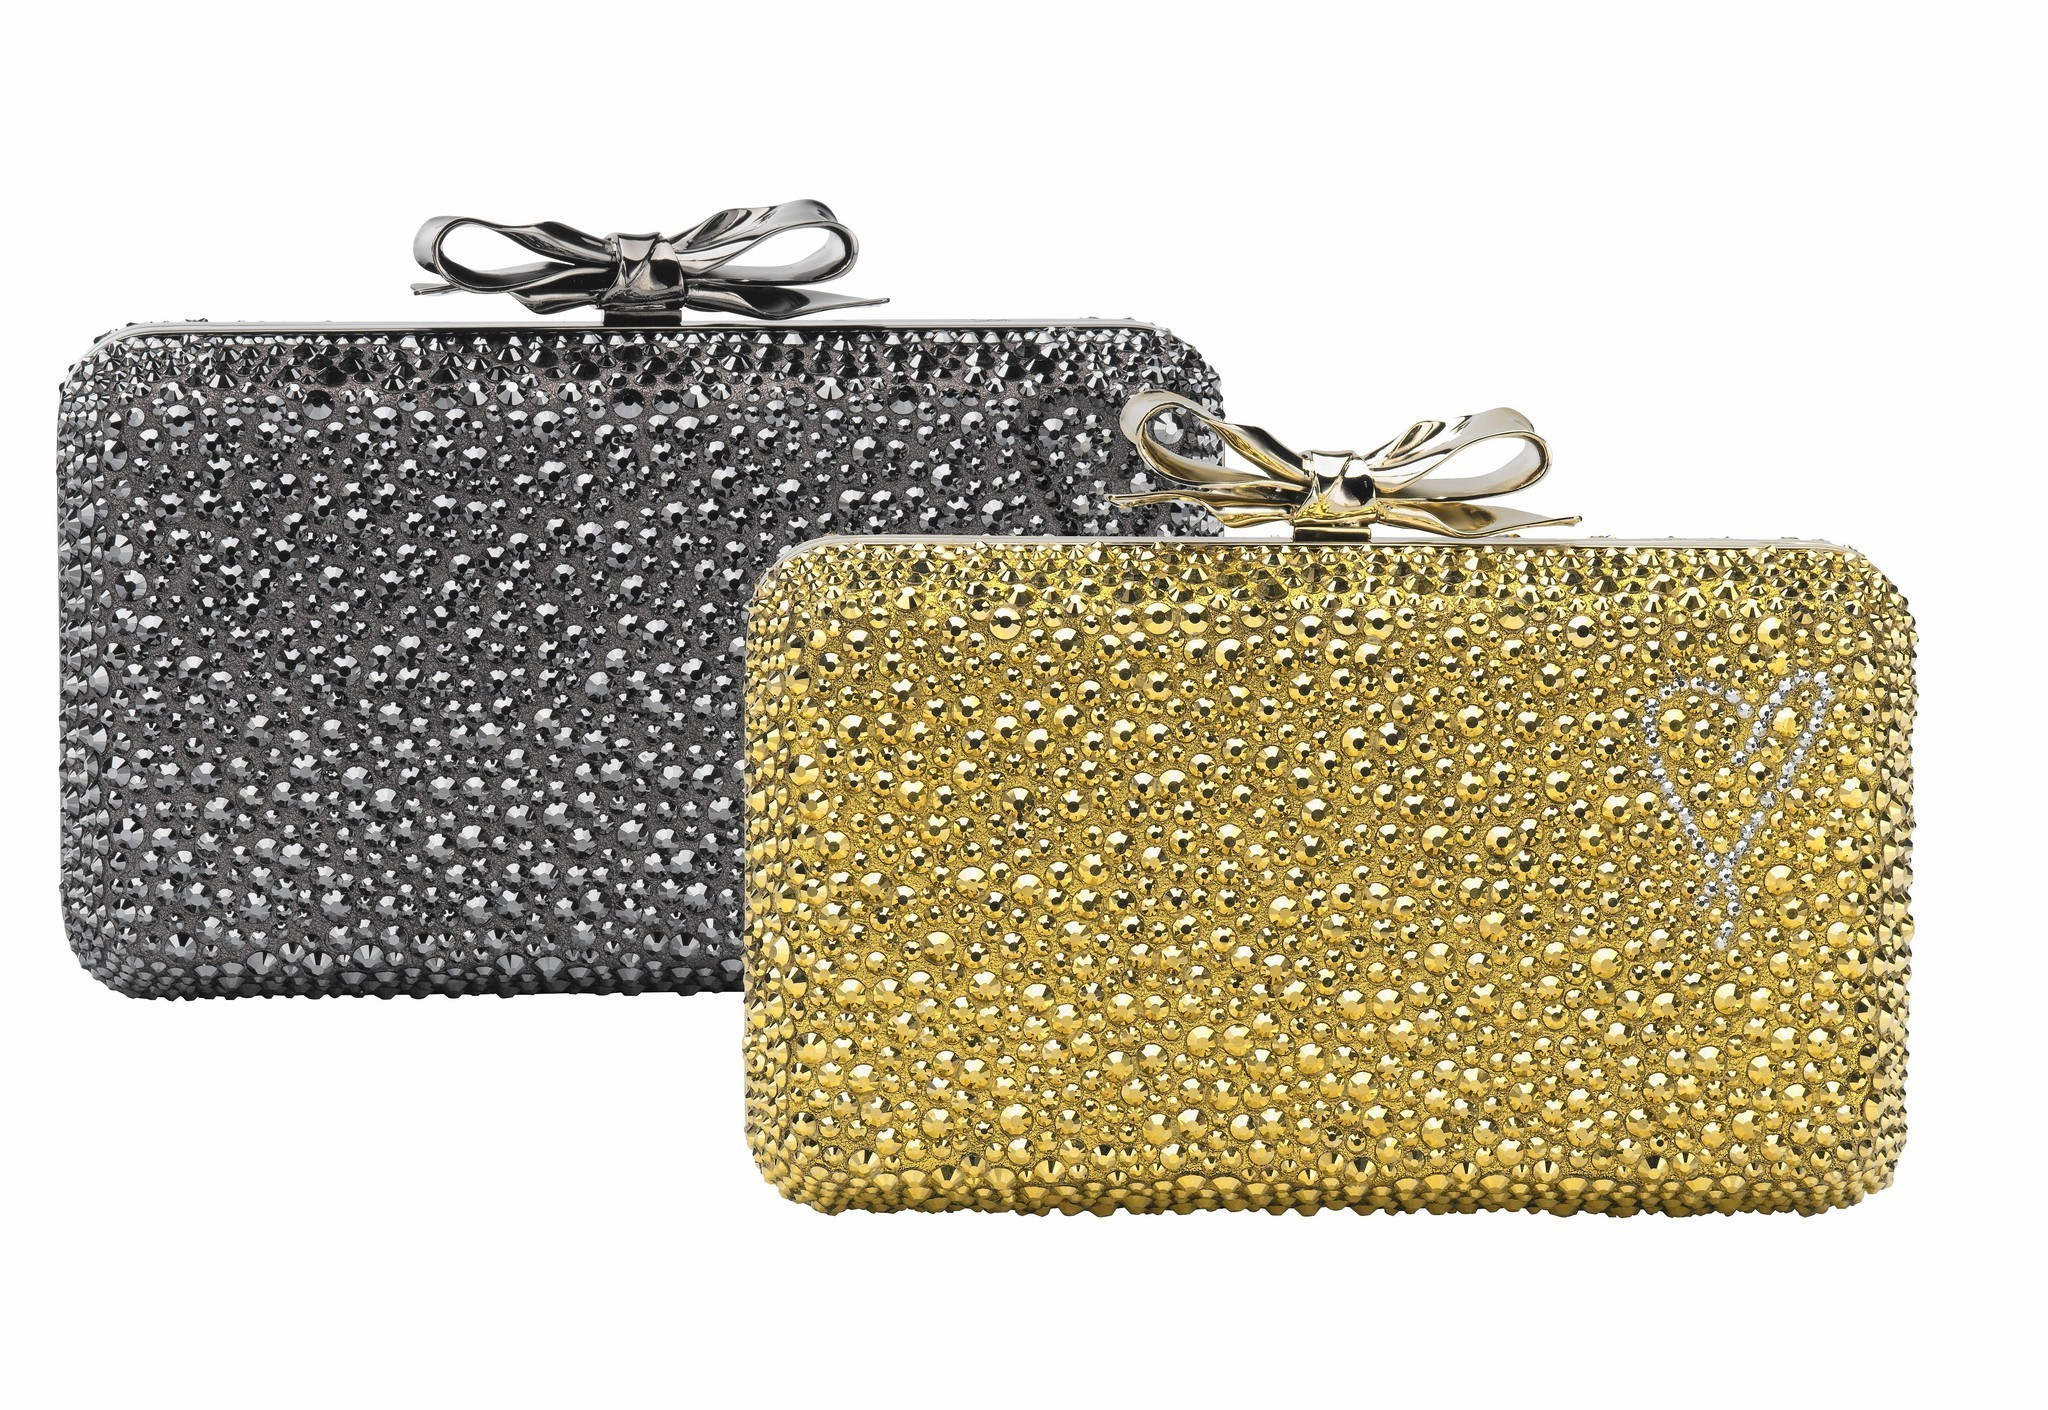 12 best clutches for New Year's Eve - Chicago Tribune